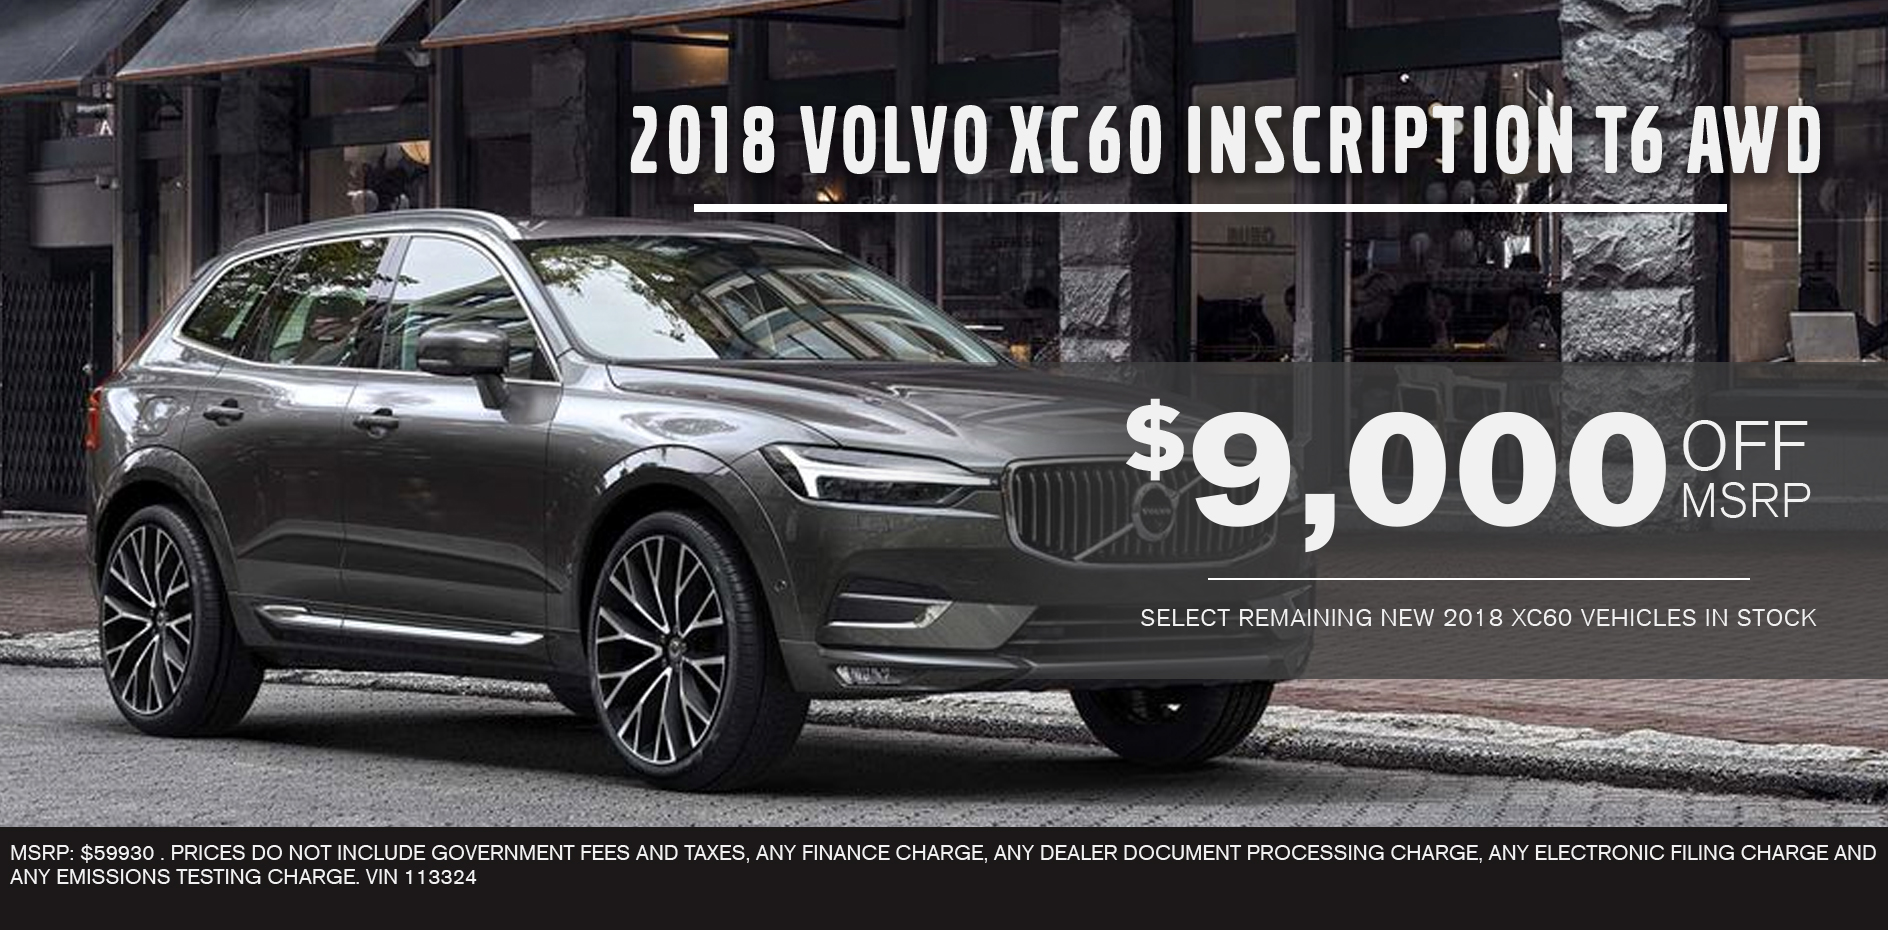 2018 Volvo XC60 Inscription T6 AWD